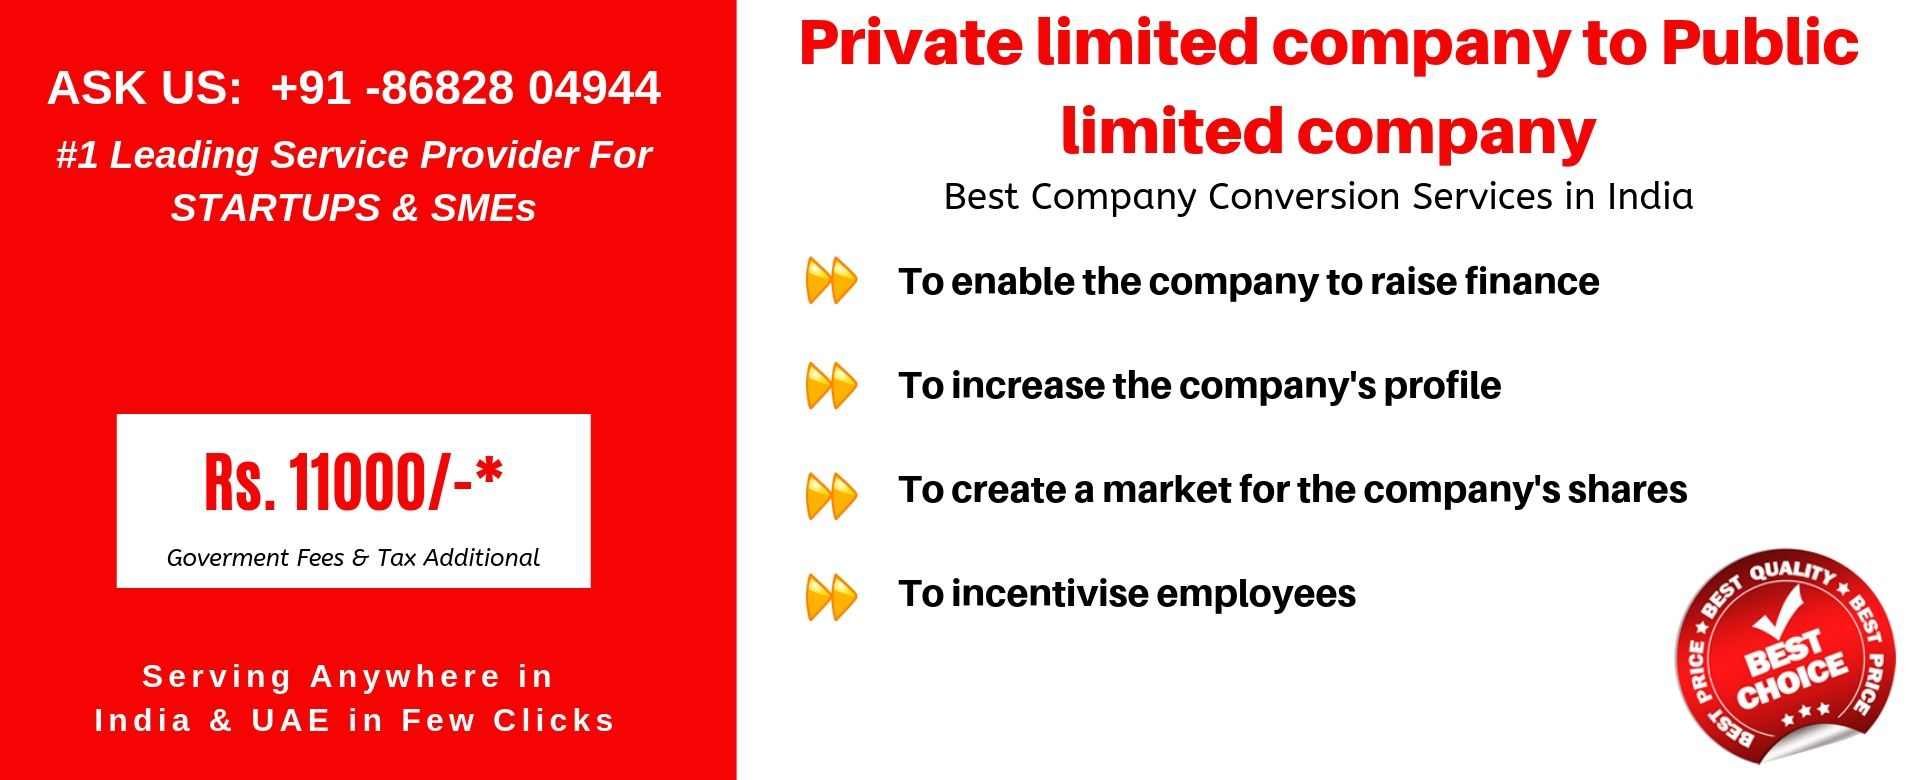 private limited company to public limited company in india